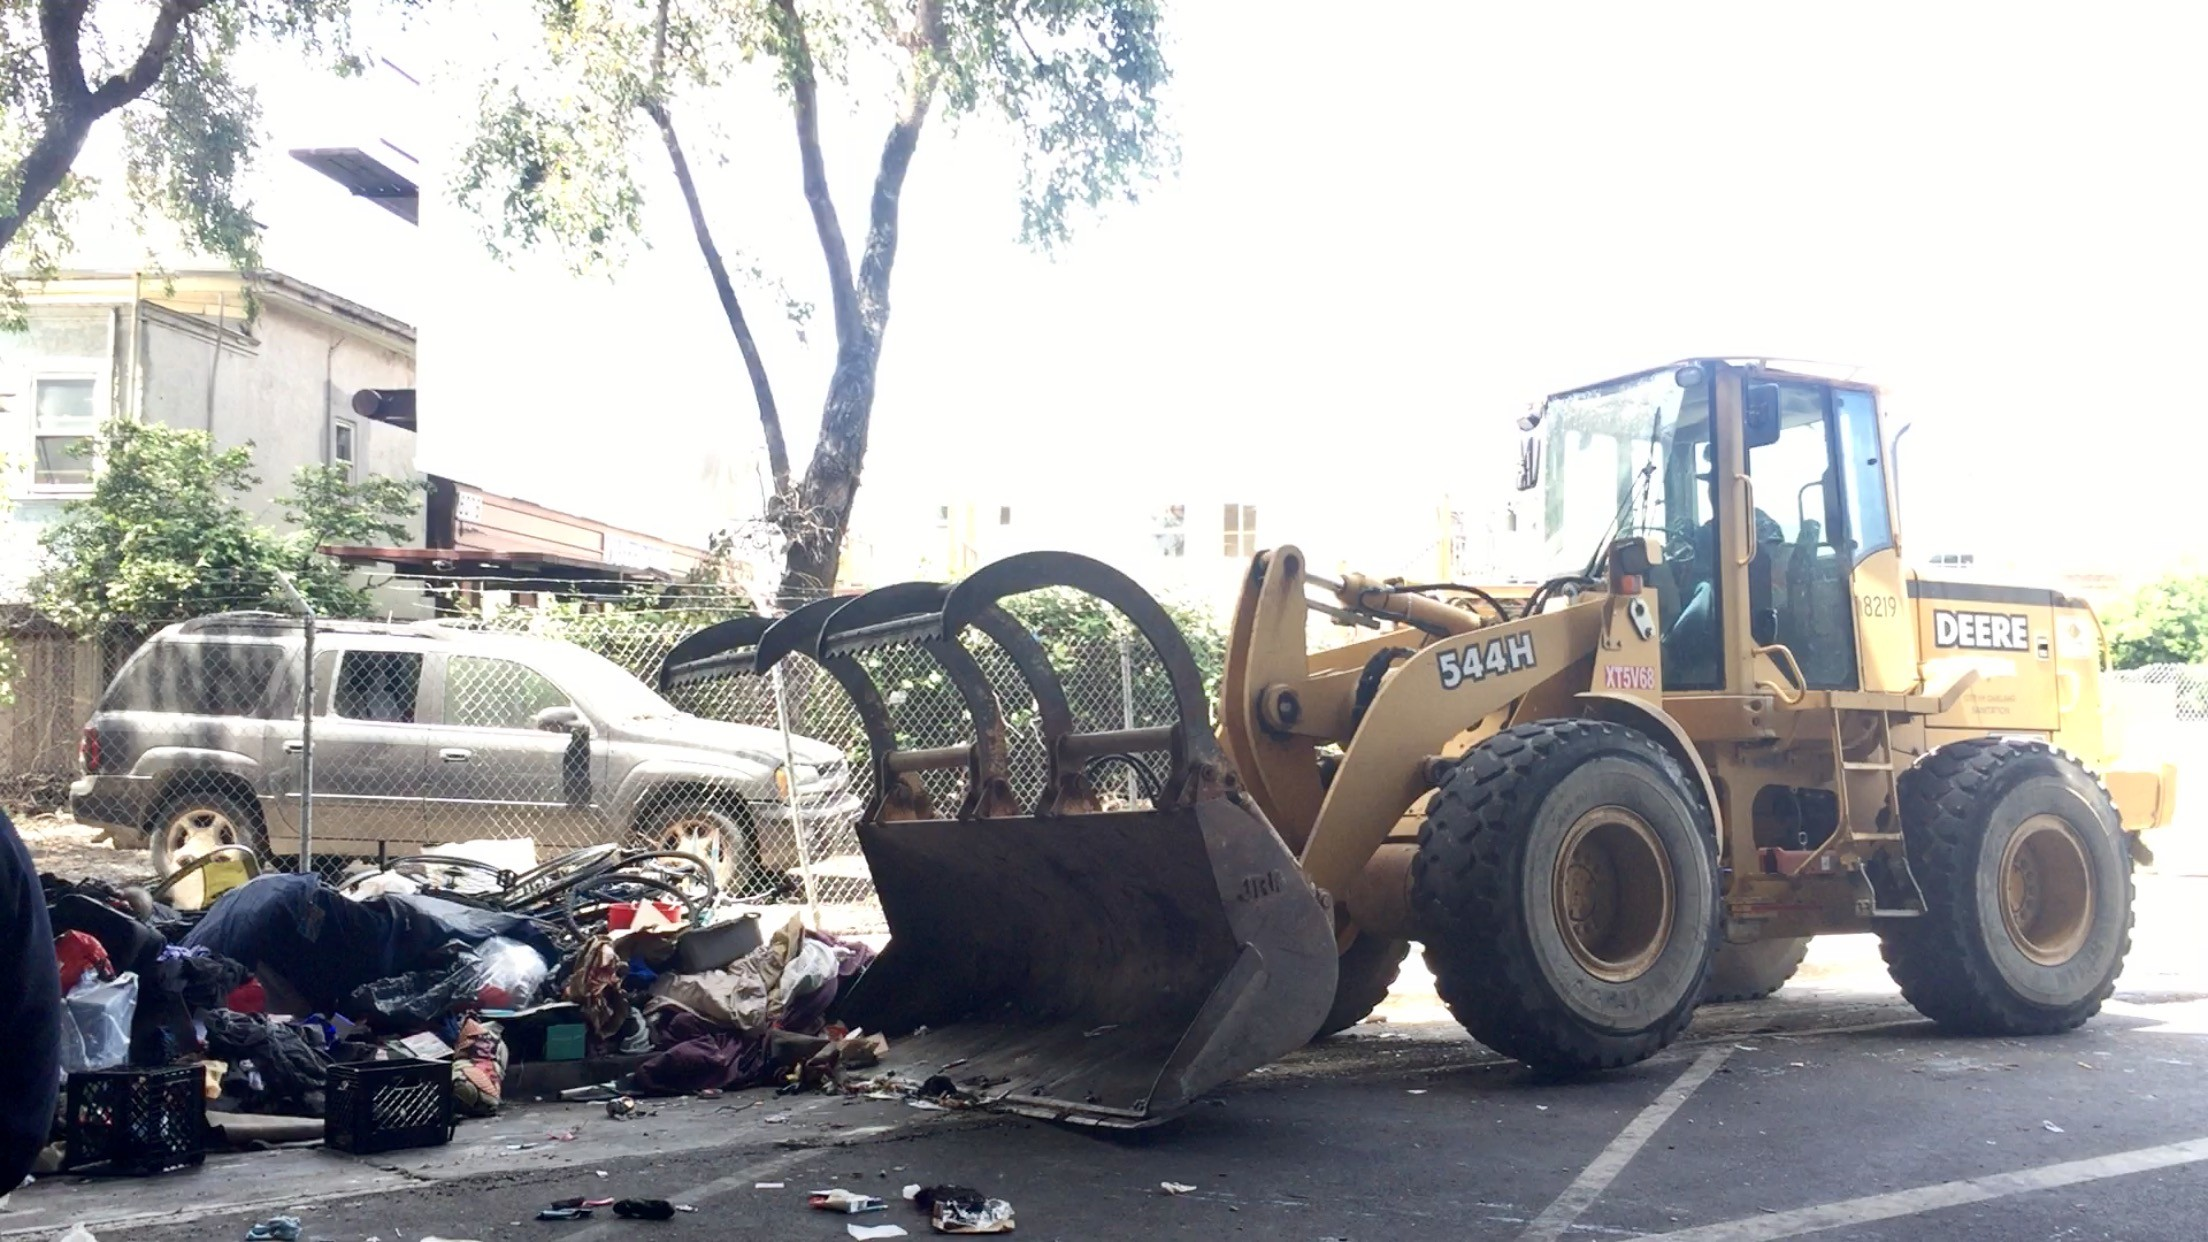 Man On Bulldozer : City of oakland 'bulldozer hit a homeless man while he